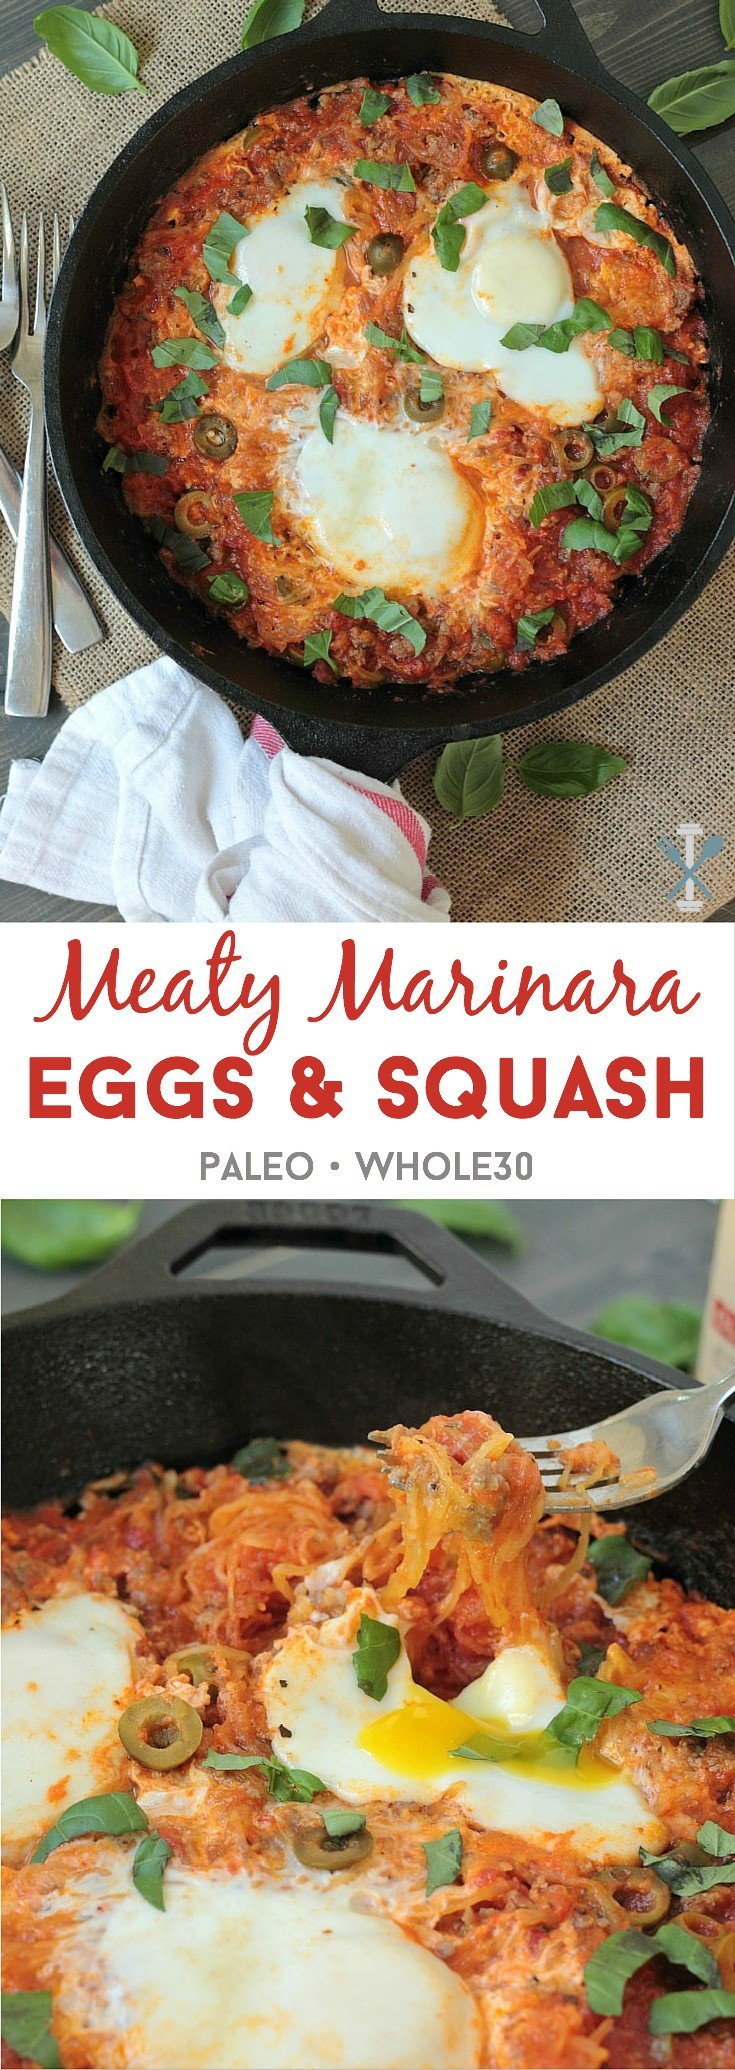 #ad #pickedatpeak I can't believe this hearty paleo and whole30 compliant meaty marinara eggs and squash is only 5 ingredients! It's a perfect one-pot breakfast or dinner for big appetites!